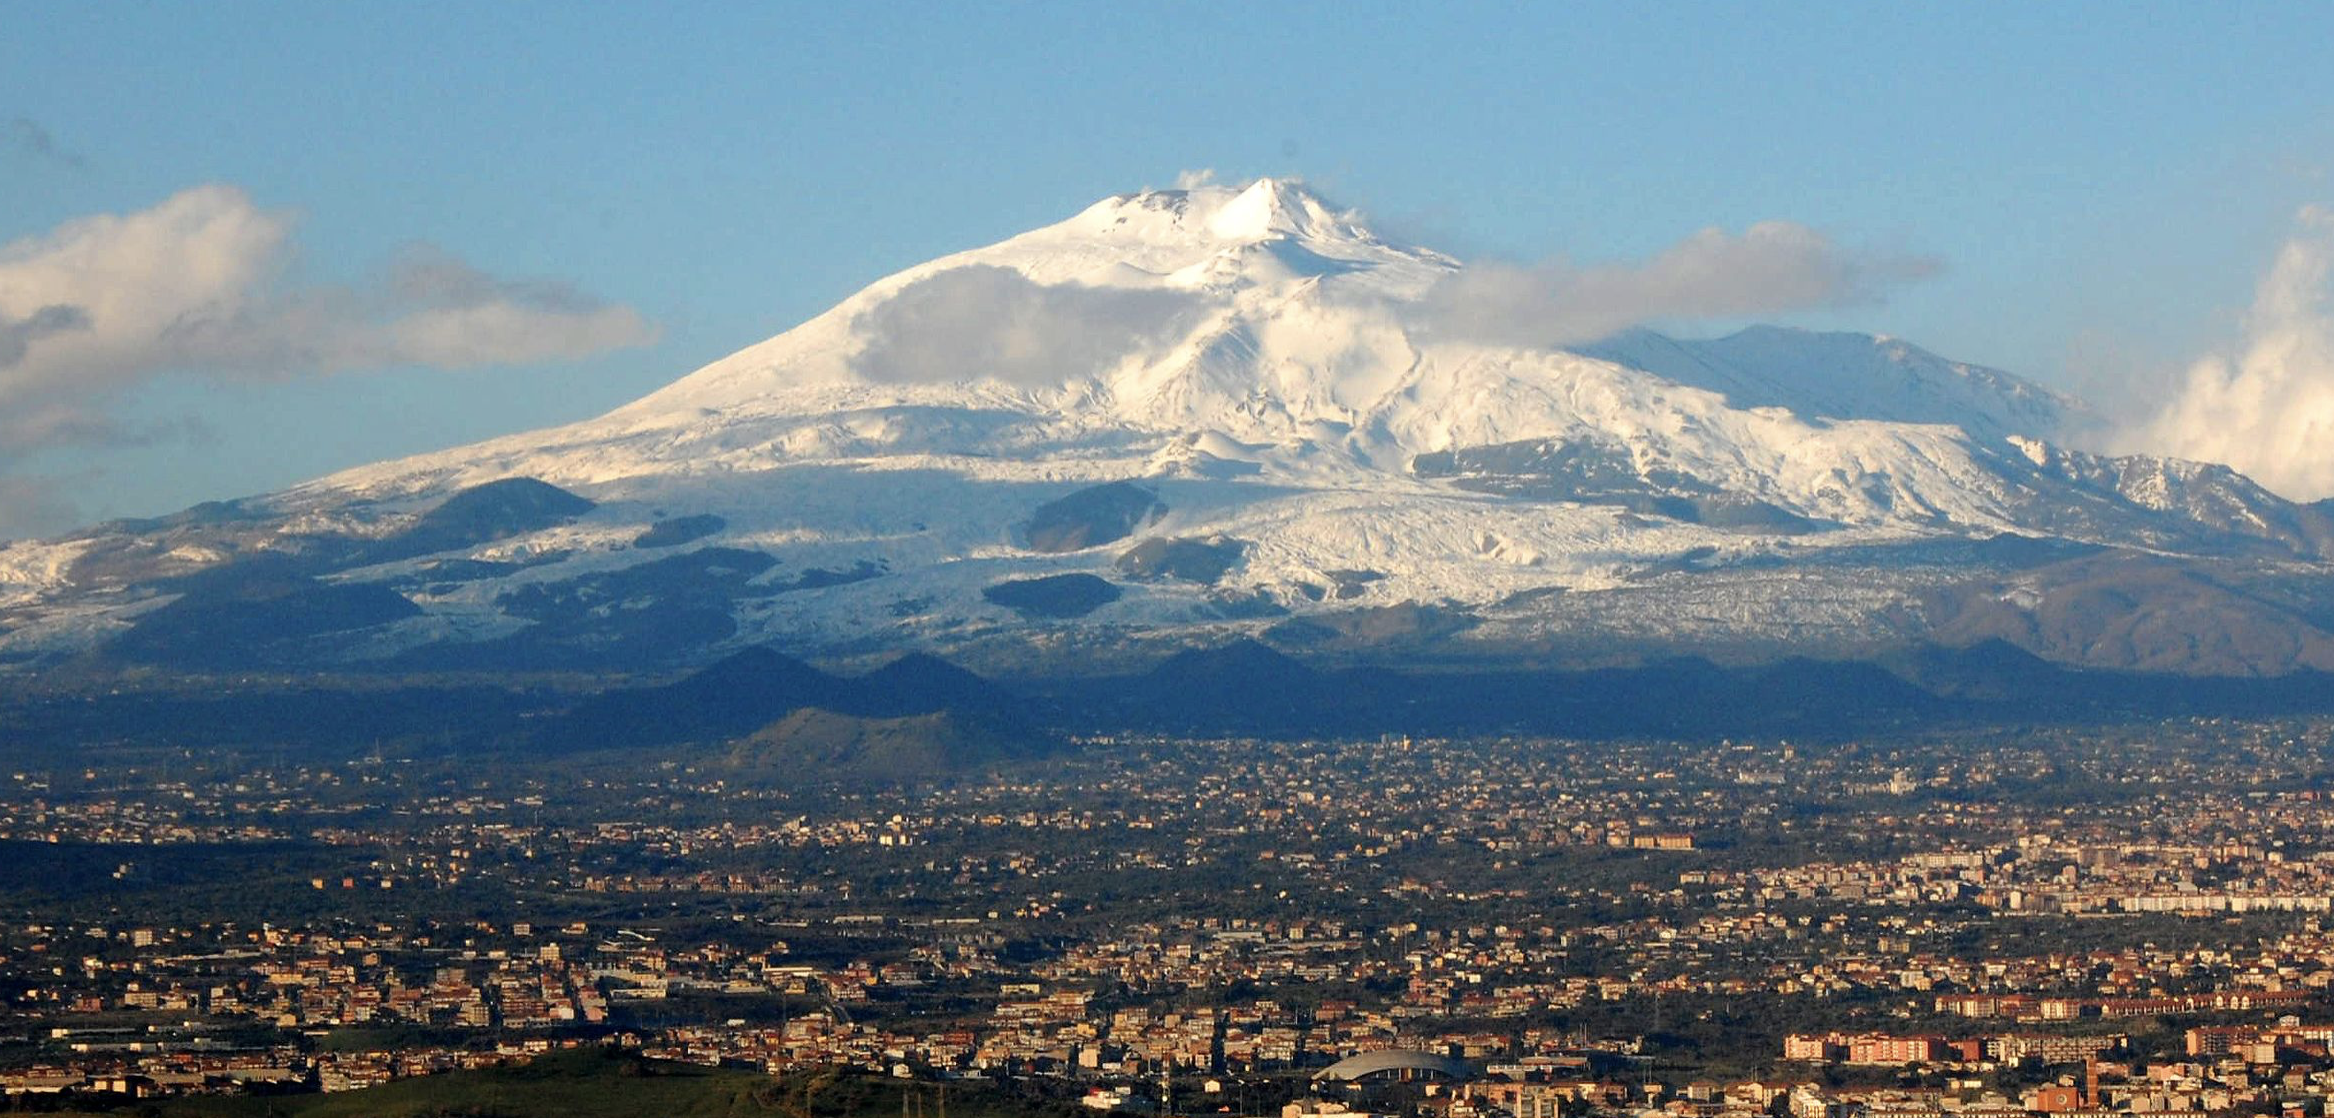 The beautiful, the massive, Mount Etna.